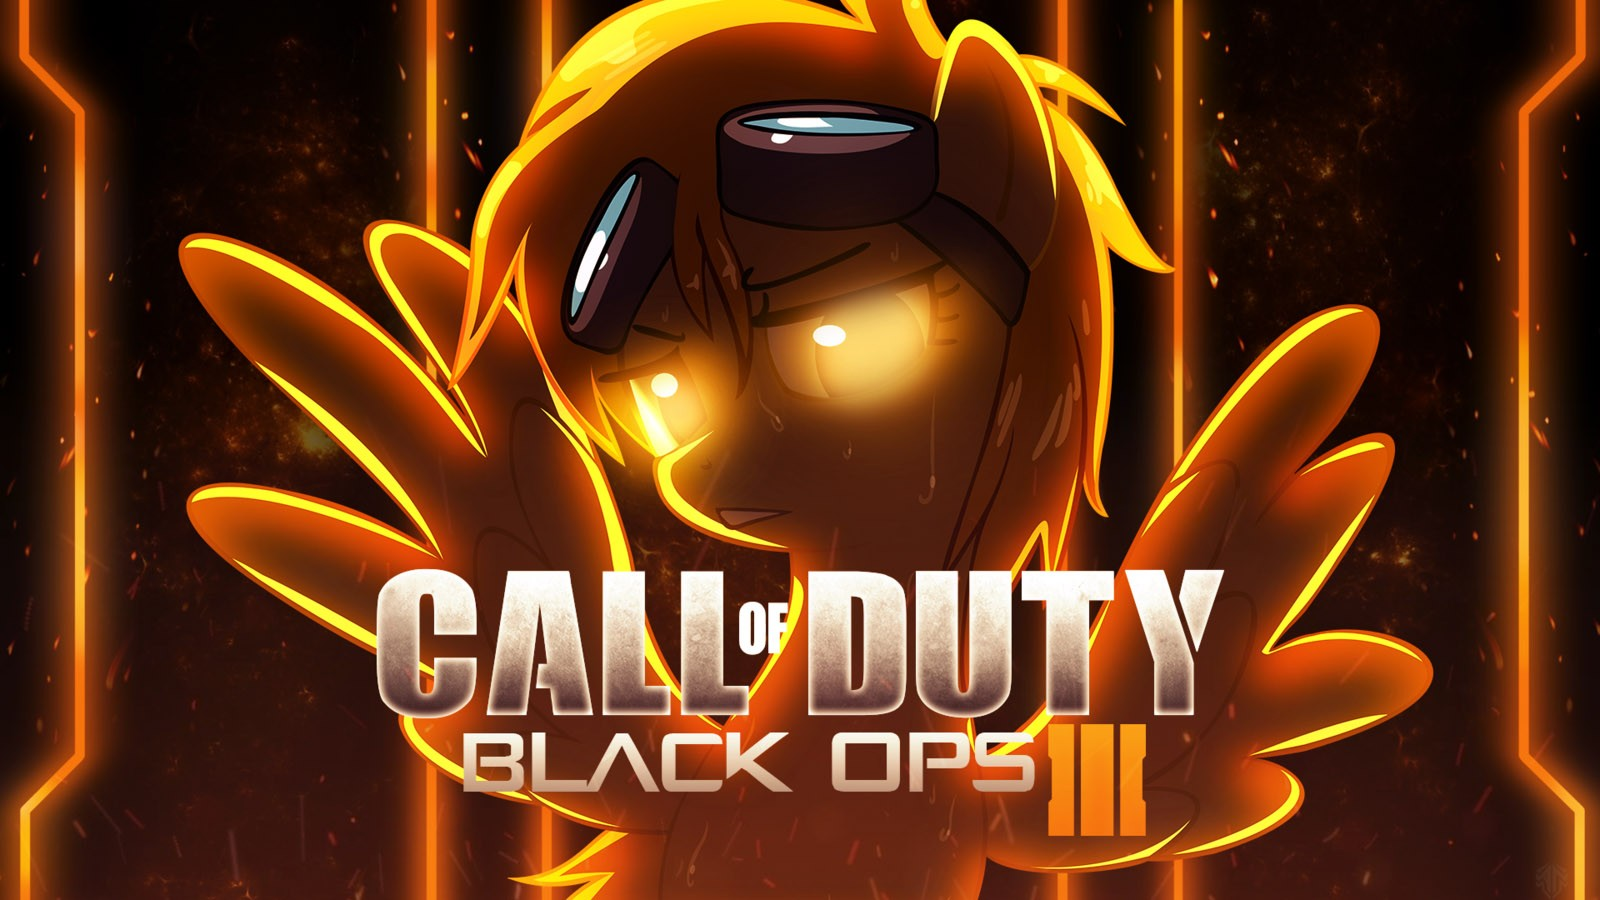 call of duty black ops 2 hd wallpaper iphone